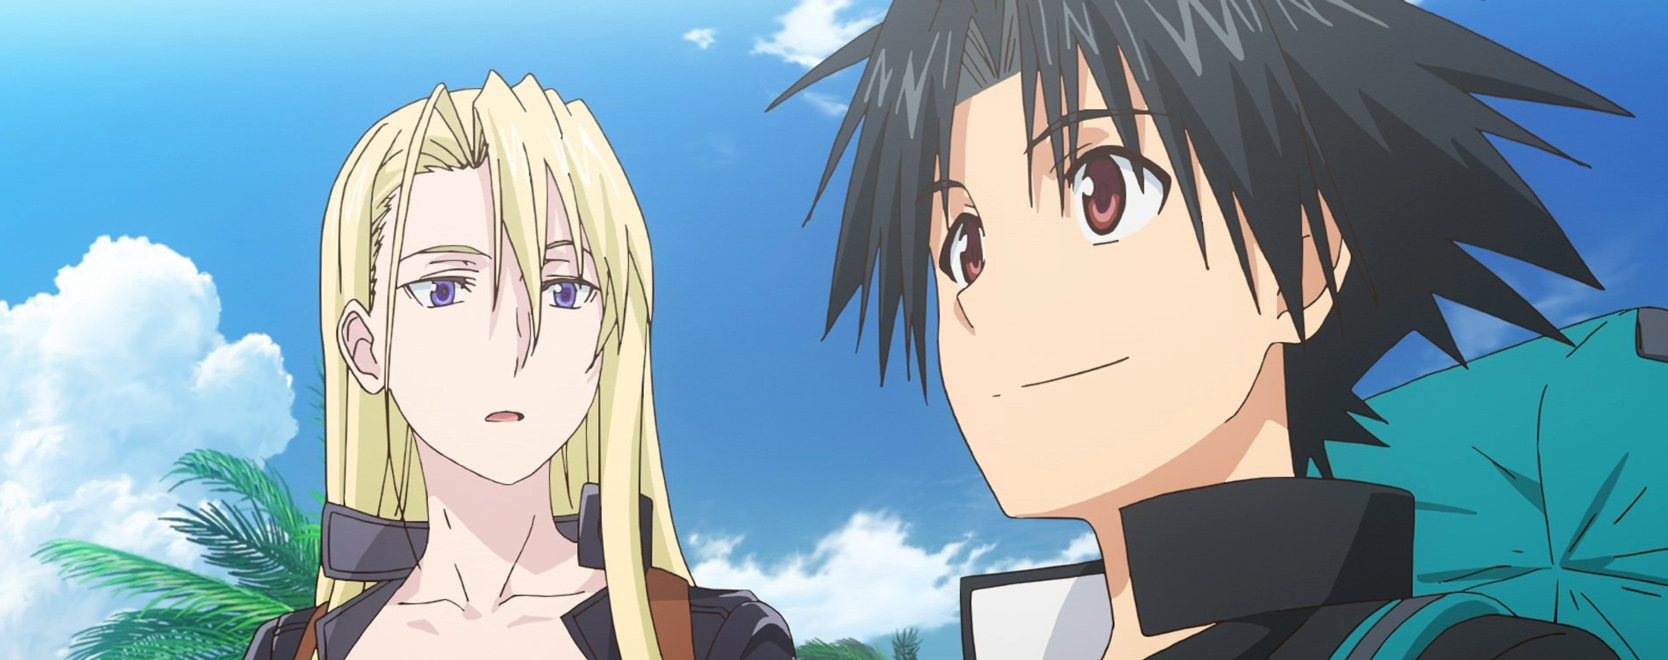 Uq Holder Kostenloser Stream In Ger Sub Anime2you